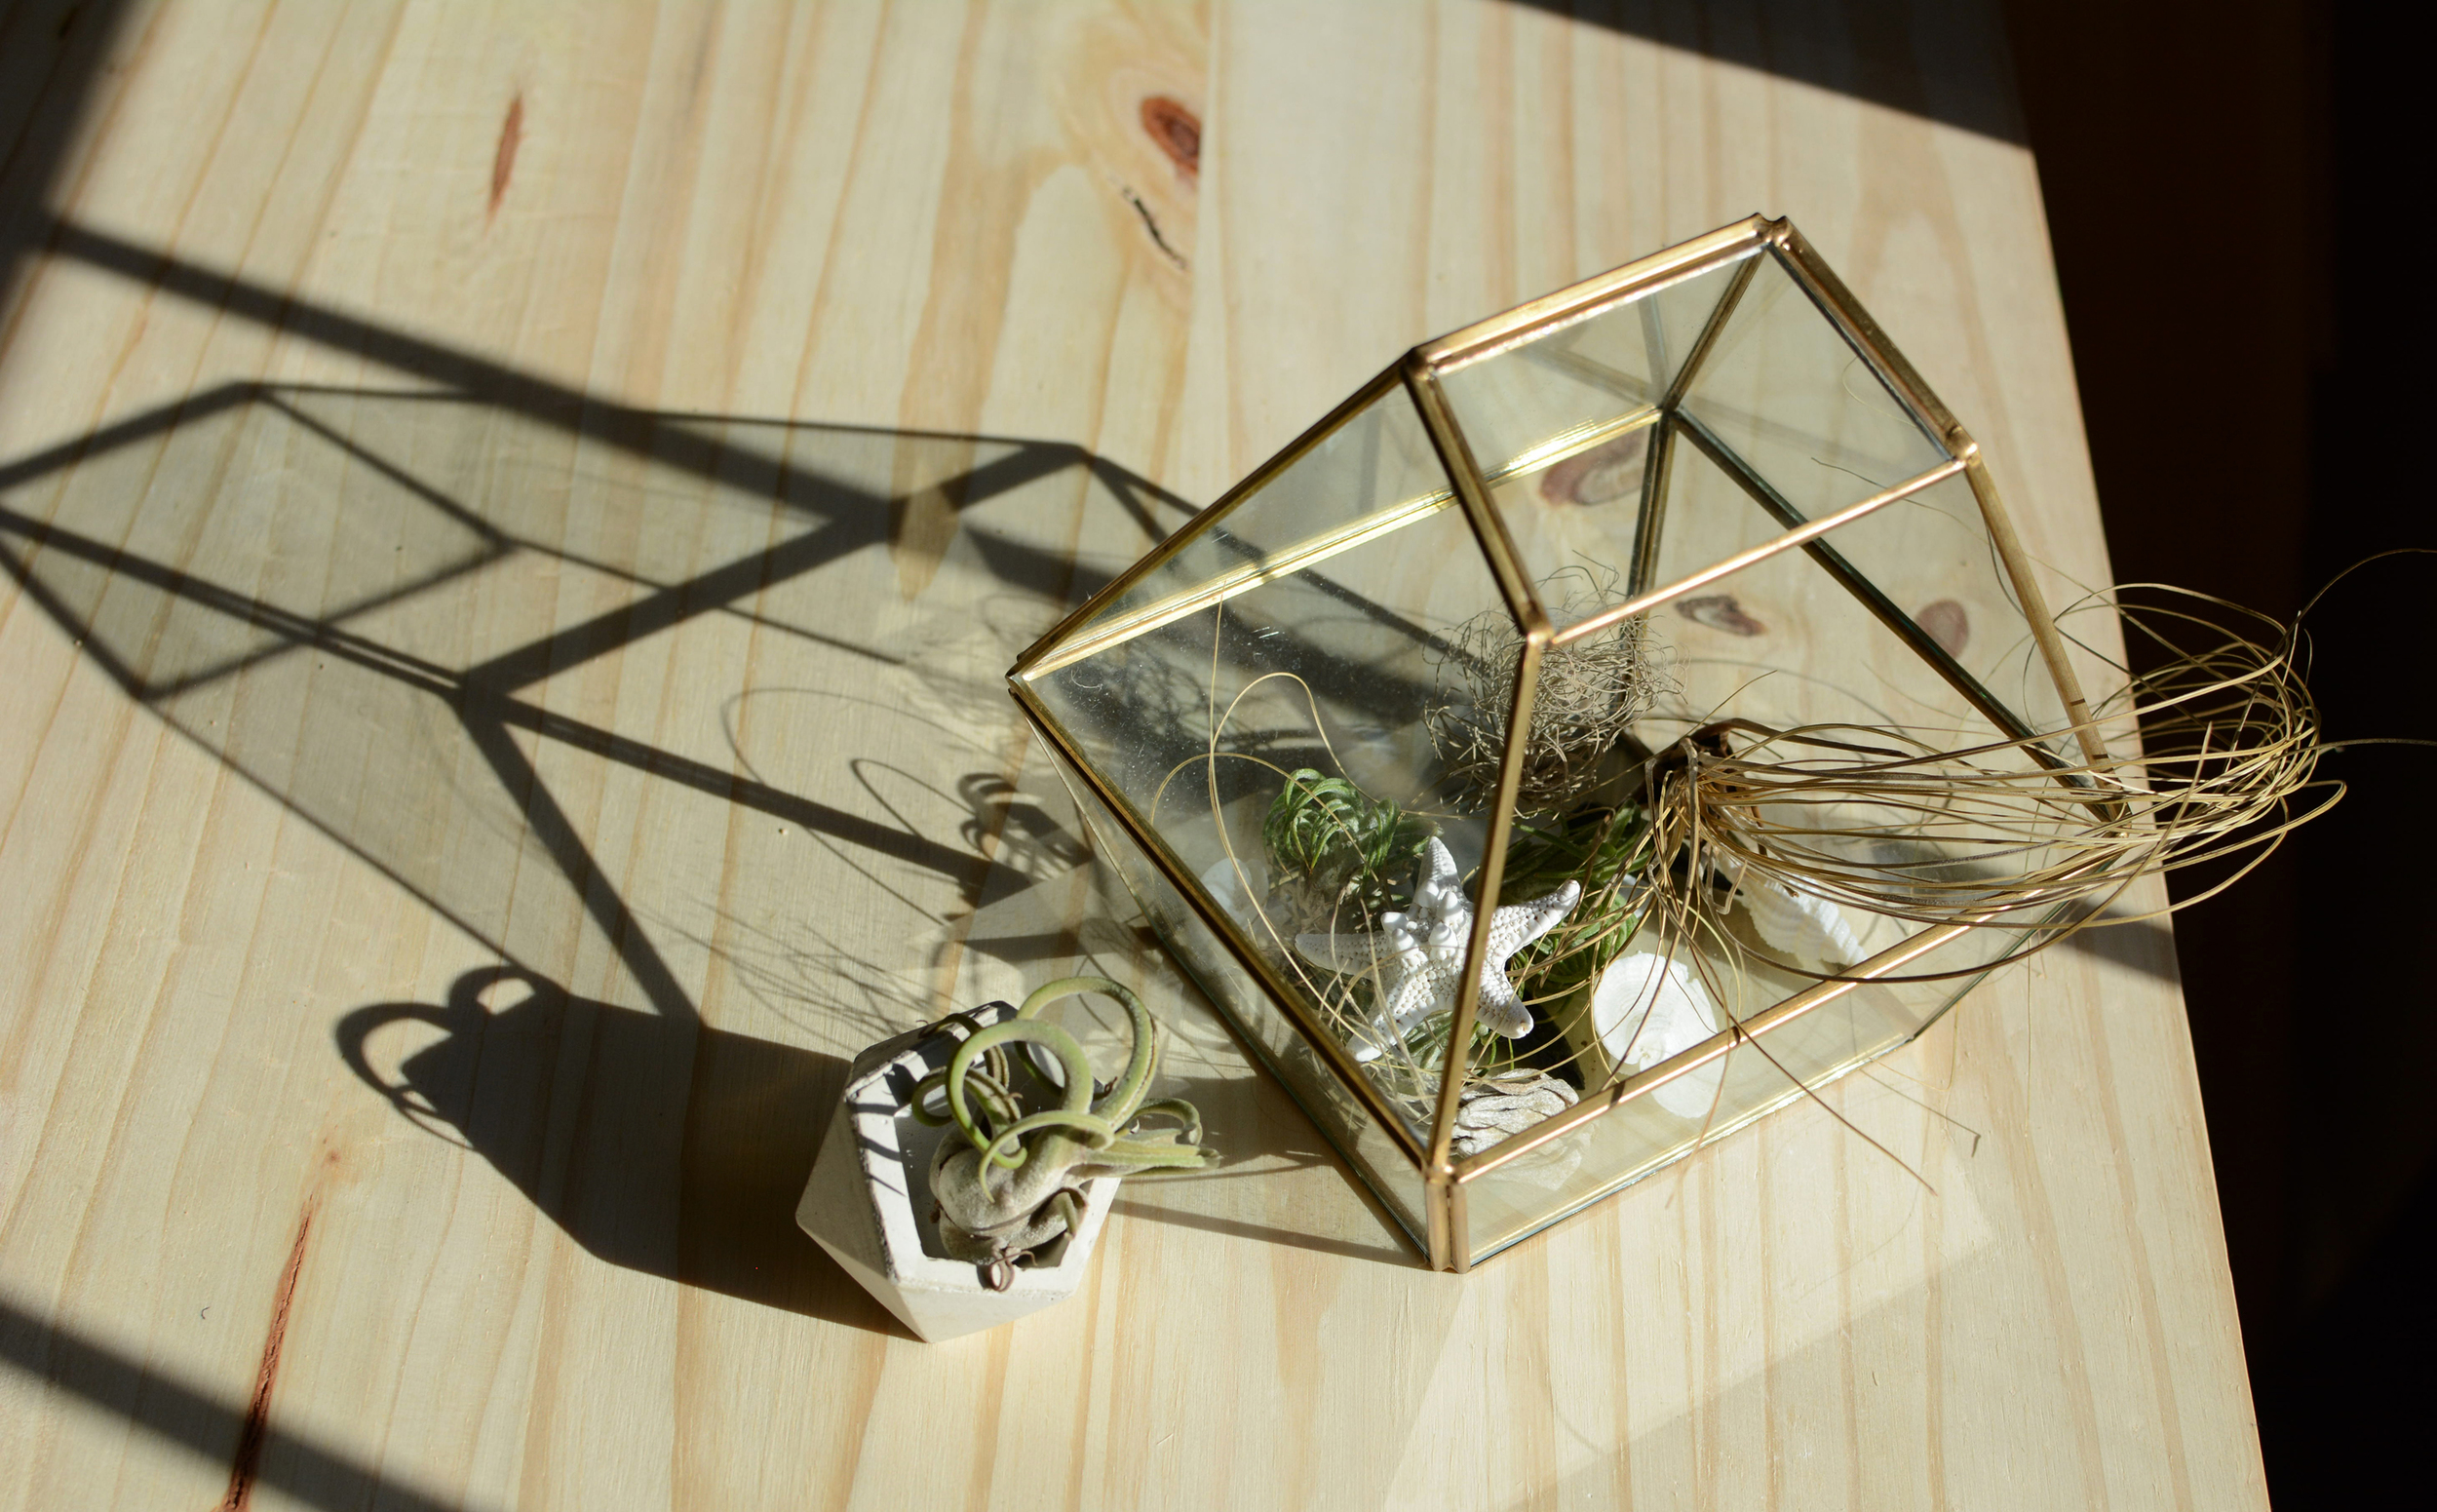 Geometric dish by Concrete Geometric  /  Glass geometric terrarium from Hobby Lobby  /  Air plants from Amazon  / Starfish and shells found in the sea